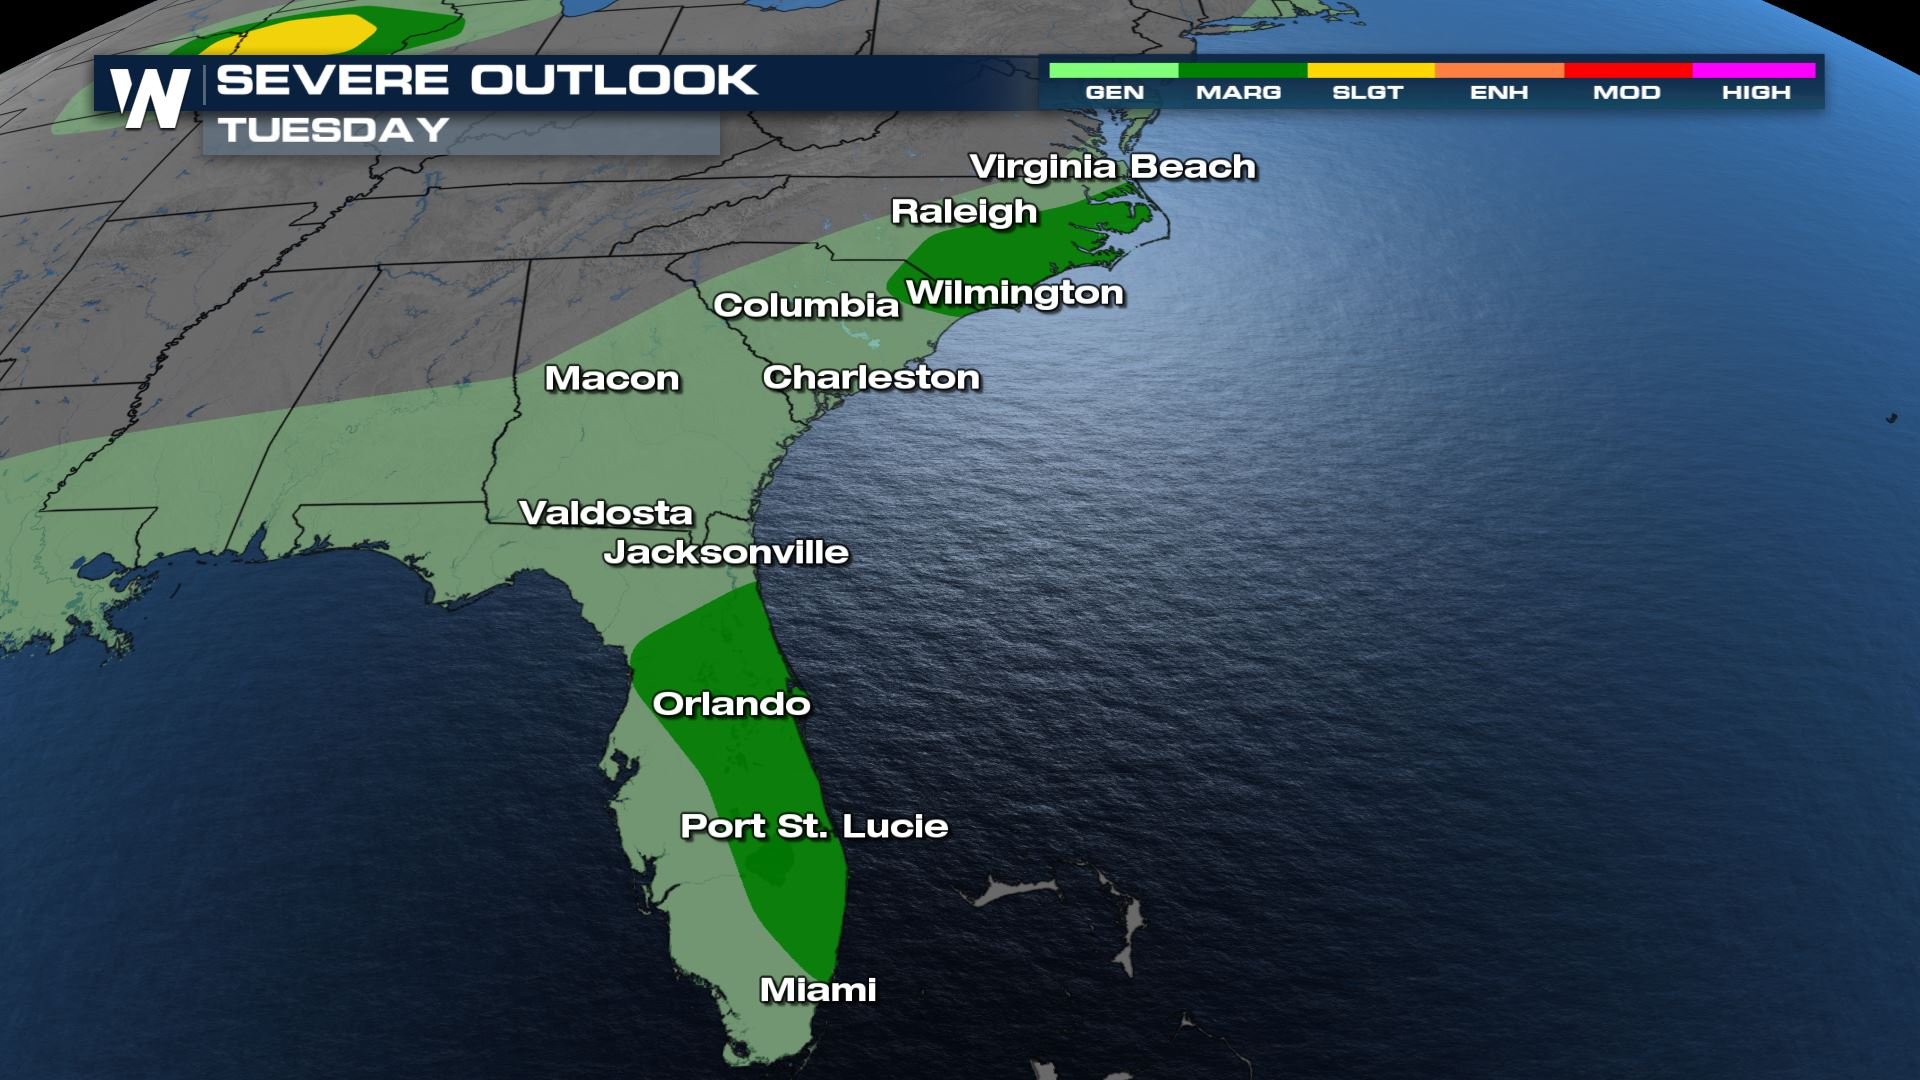 Isolated Severe Storms from the Mid-Atlantic to the Florida Tuesday